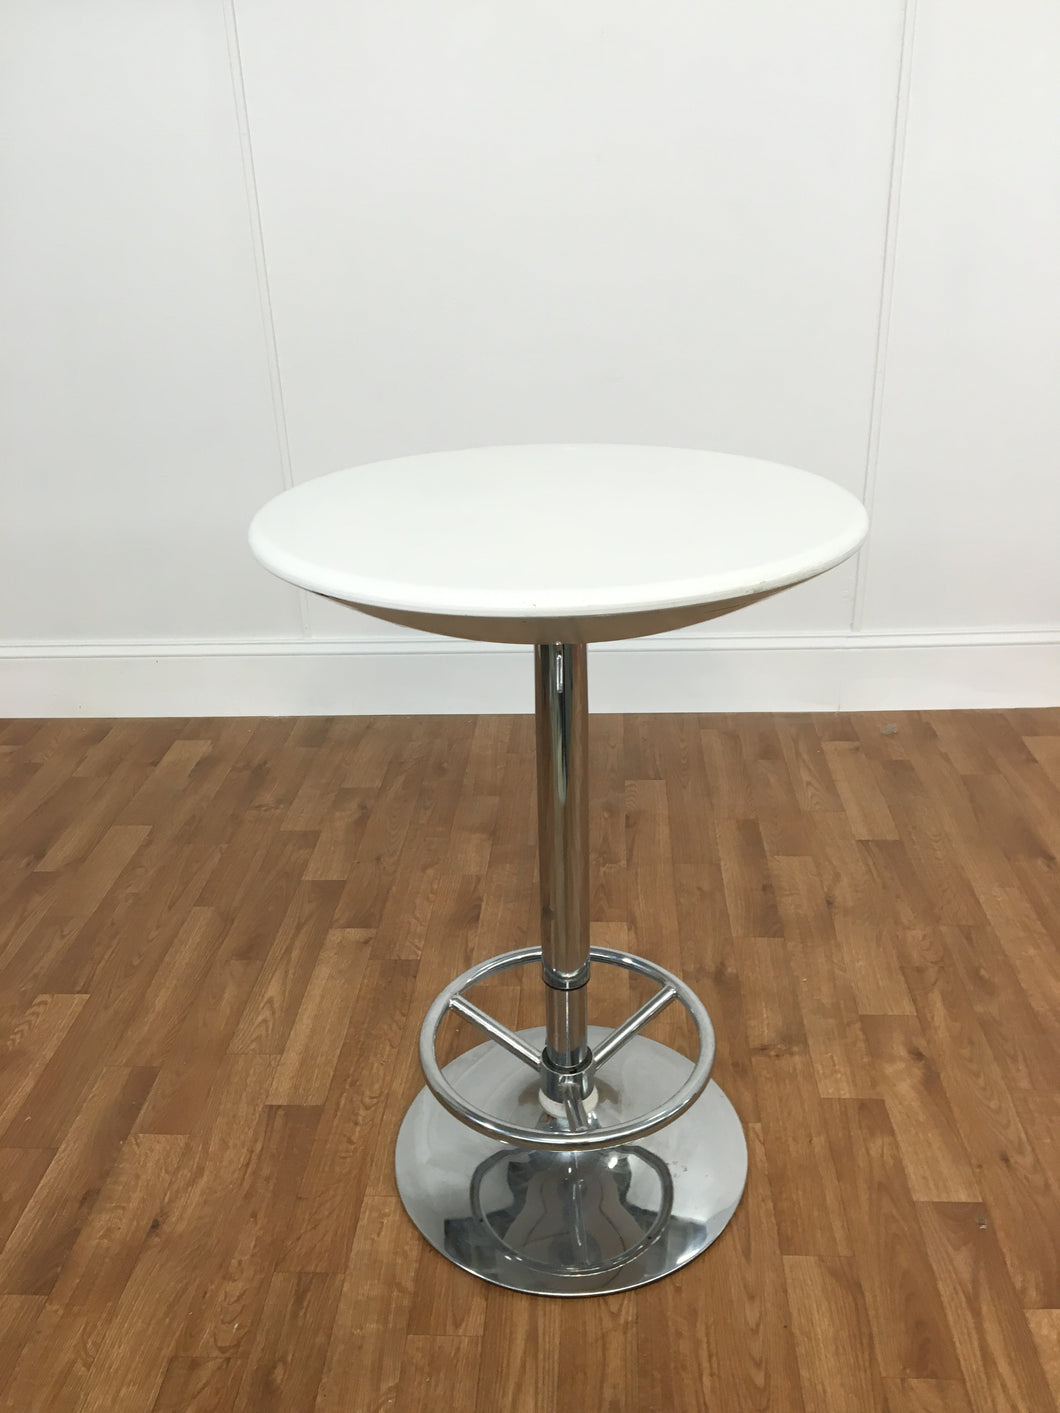 TALL WHITE PLASTIC ADJUSTABLE PARLOR TABLE